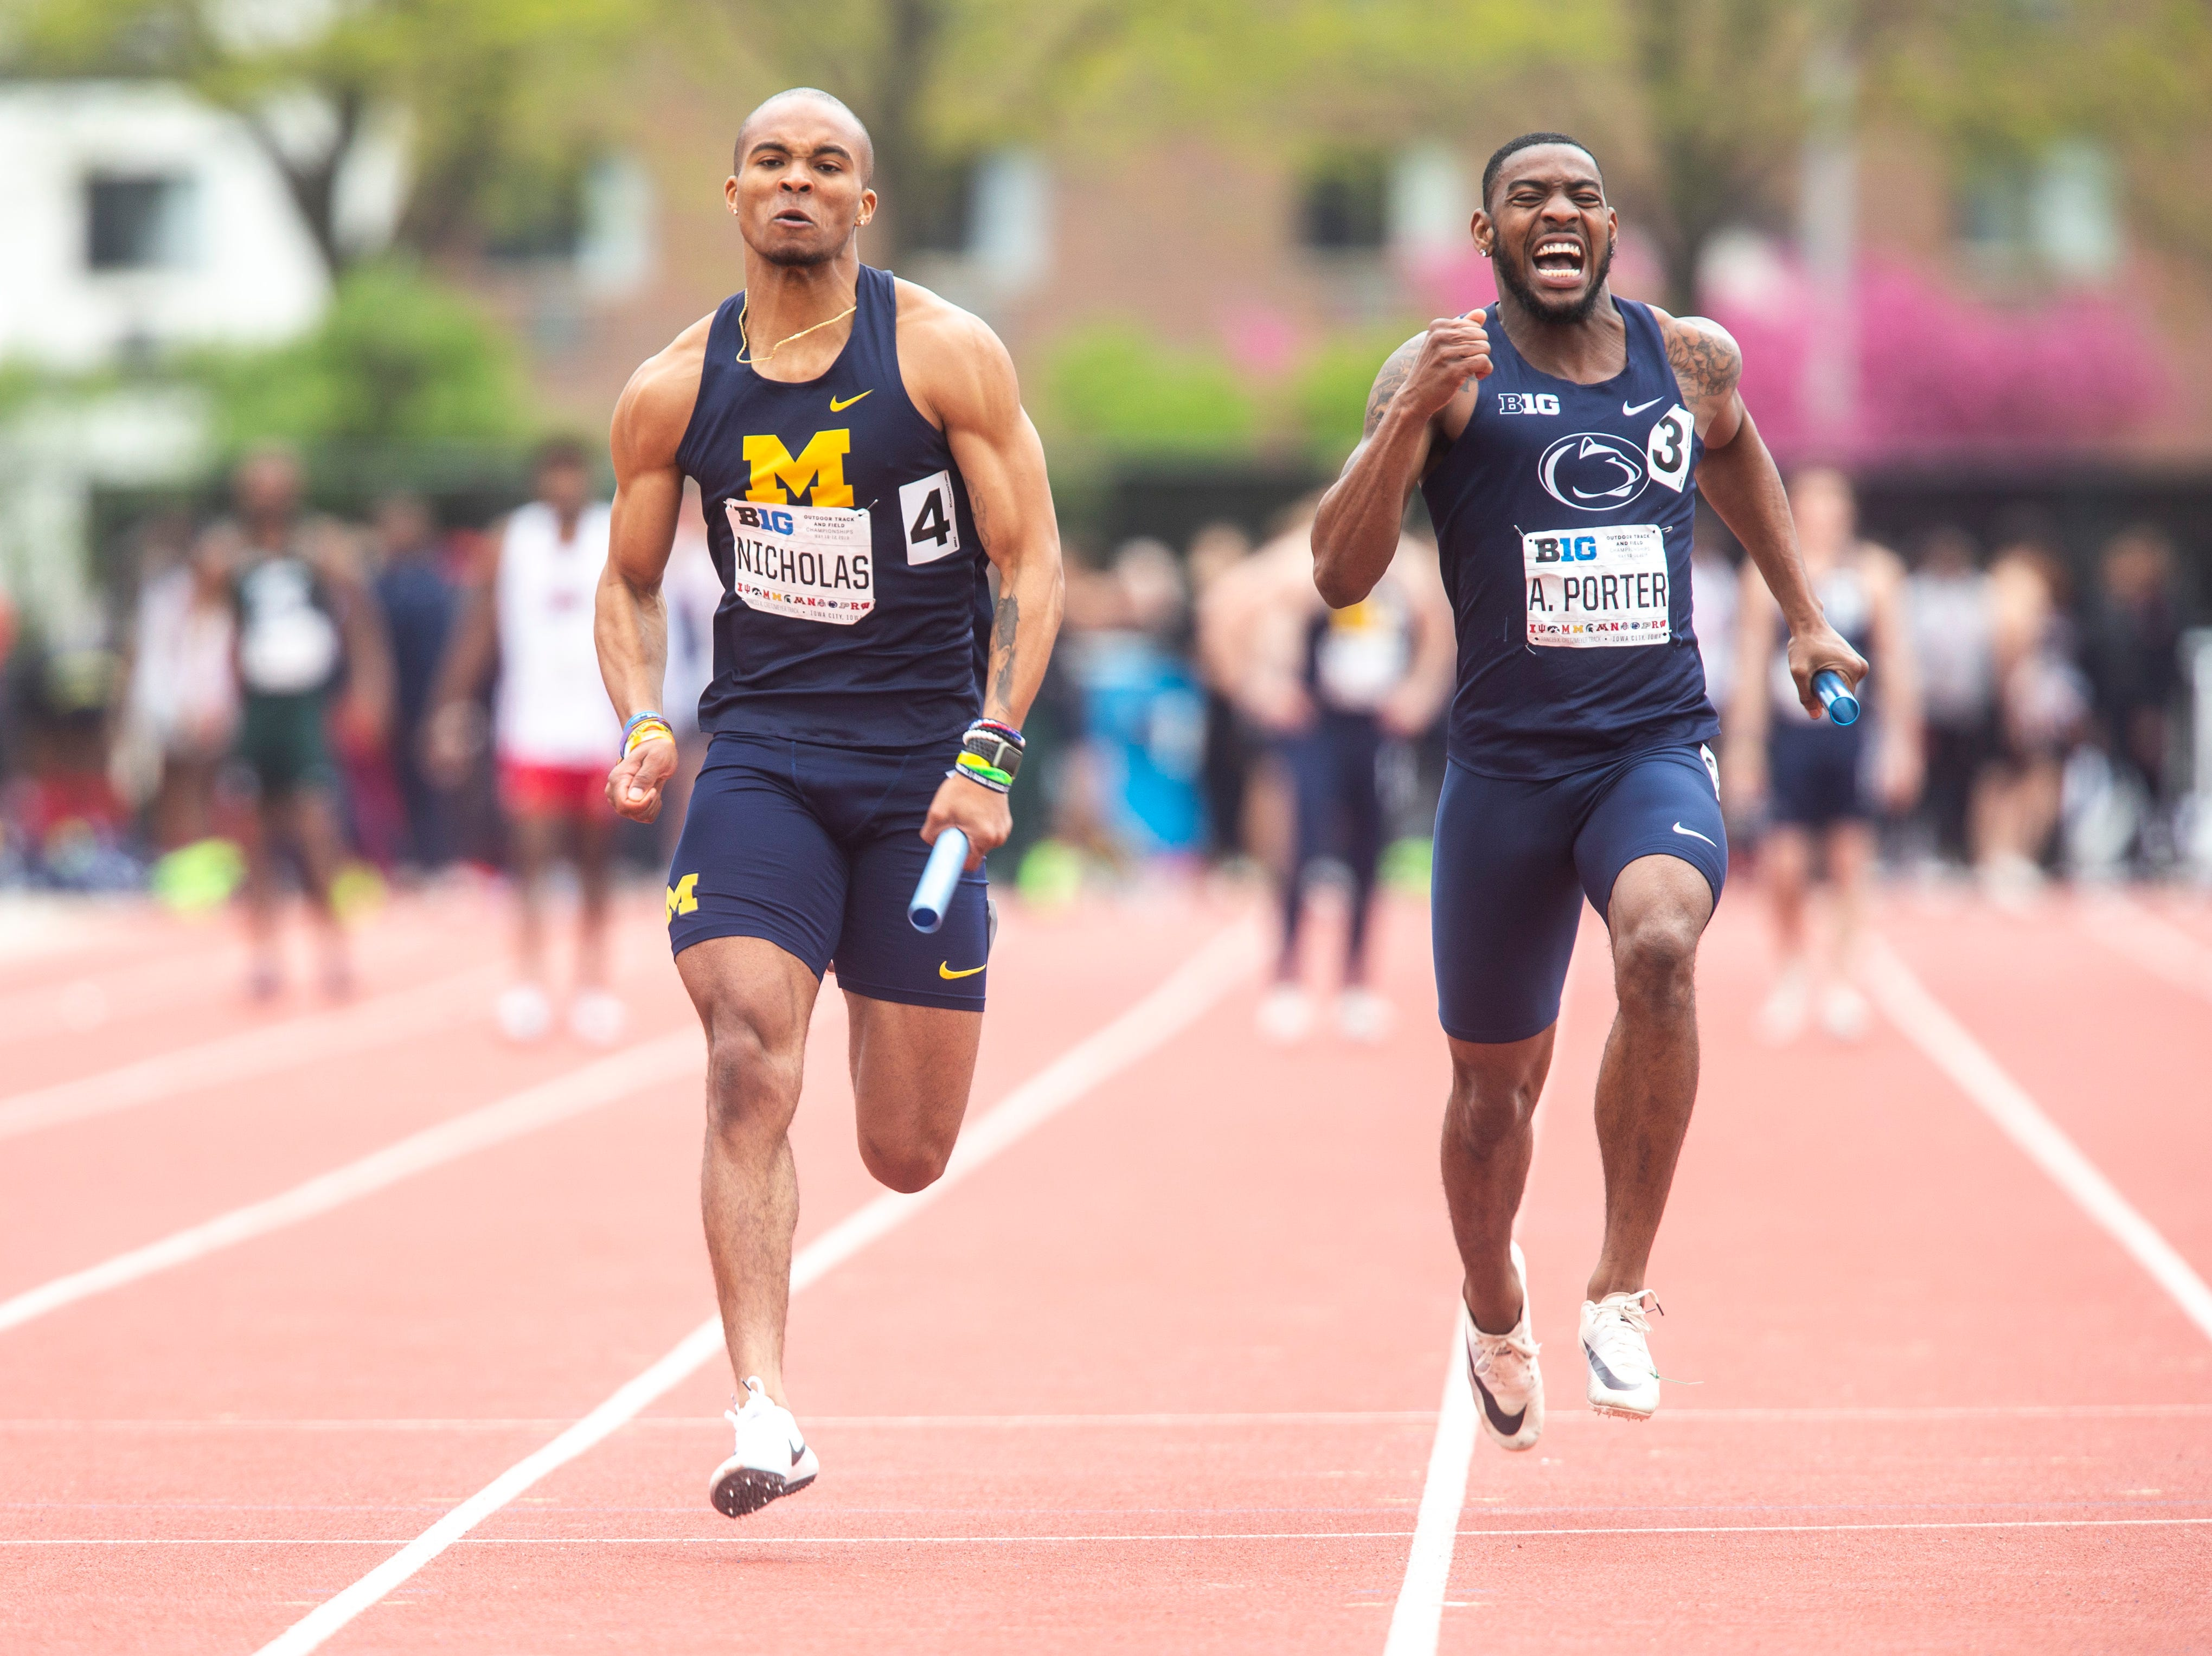 Michigan's Desmond Nicholas (4) beats out Penn State's Anton Porter (3) at the finish line of the first heat of the 4x100 meter relay during the final day of Big Ten track and field outdoor championships, Sunday, May 12, 2019, at Francis X. Cretzmeyer Track on the University of Iowa campus in Iowa City, Iowa.